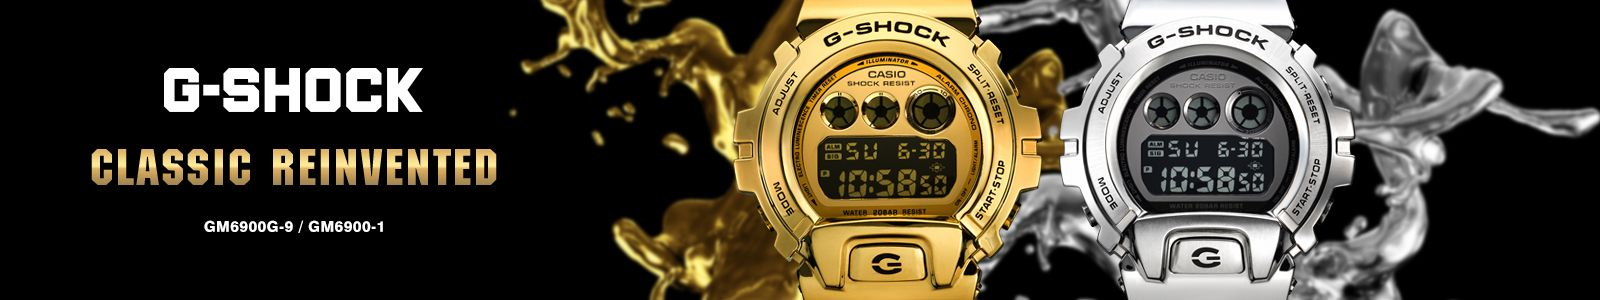 G-Shock, Classic Reinvented